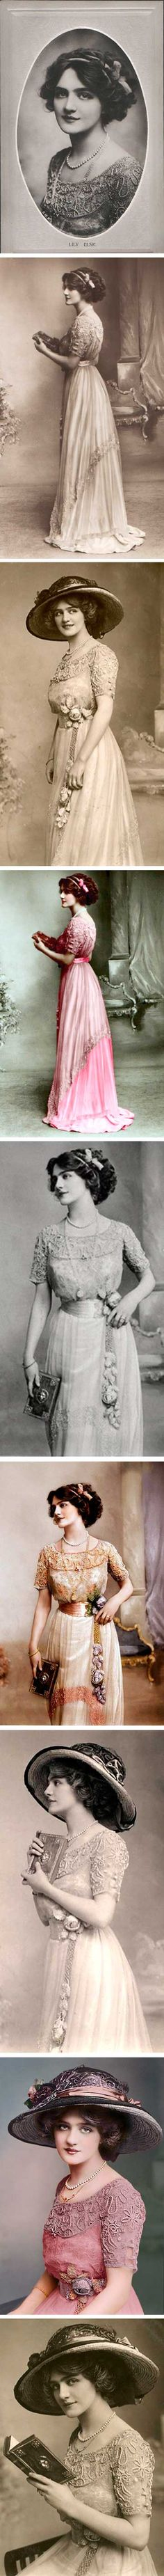 Lily Elsie was a popular actress and singer in Edwardian days. A century later, thanks to the Internet, she has been rediscovered. Her dreamy beauty was captured in scores of photographs. She posed in many beautiful dresses, but none so frequently as the one seen here. I haven't been able to discover who designed the gown (although one source claims it was Lucile) or what color it was, but that just sets us free to imagine.